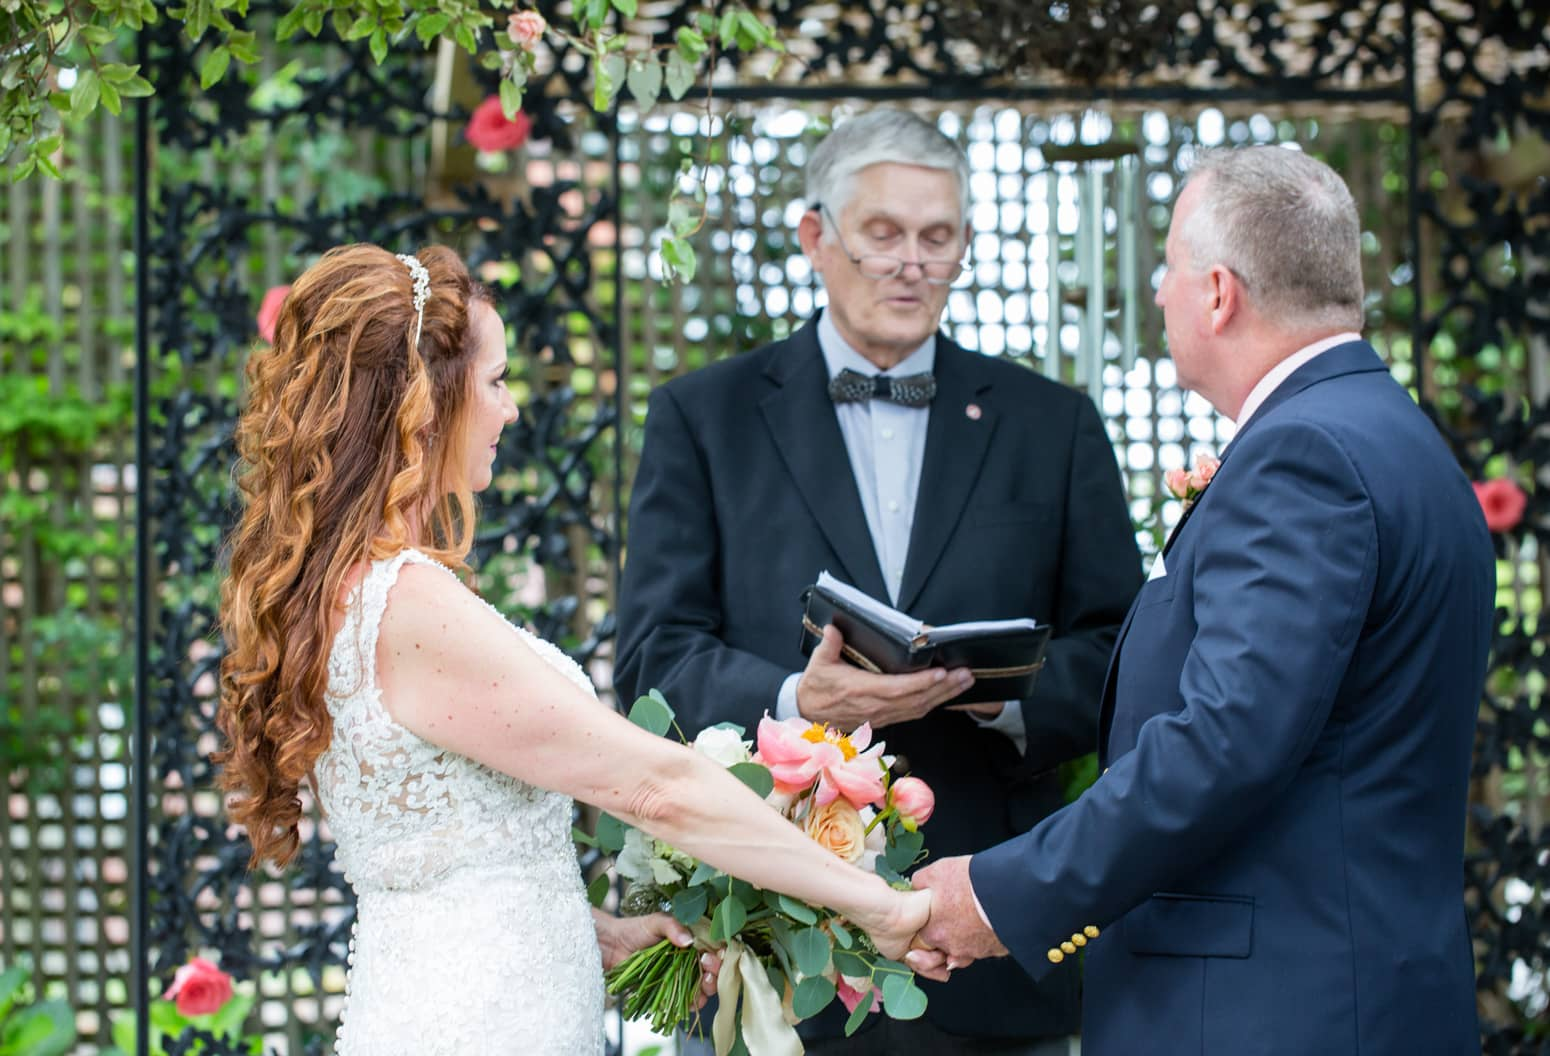 Wedding Ceremony at Our Outer Banks Wedding Venue